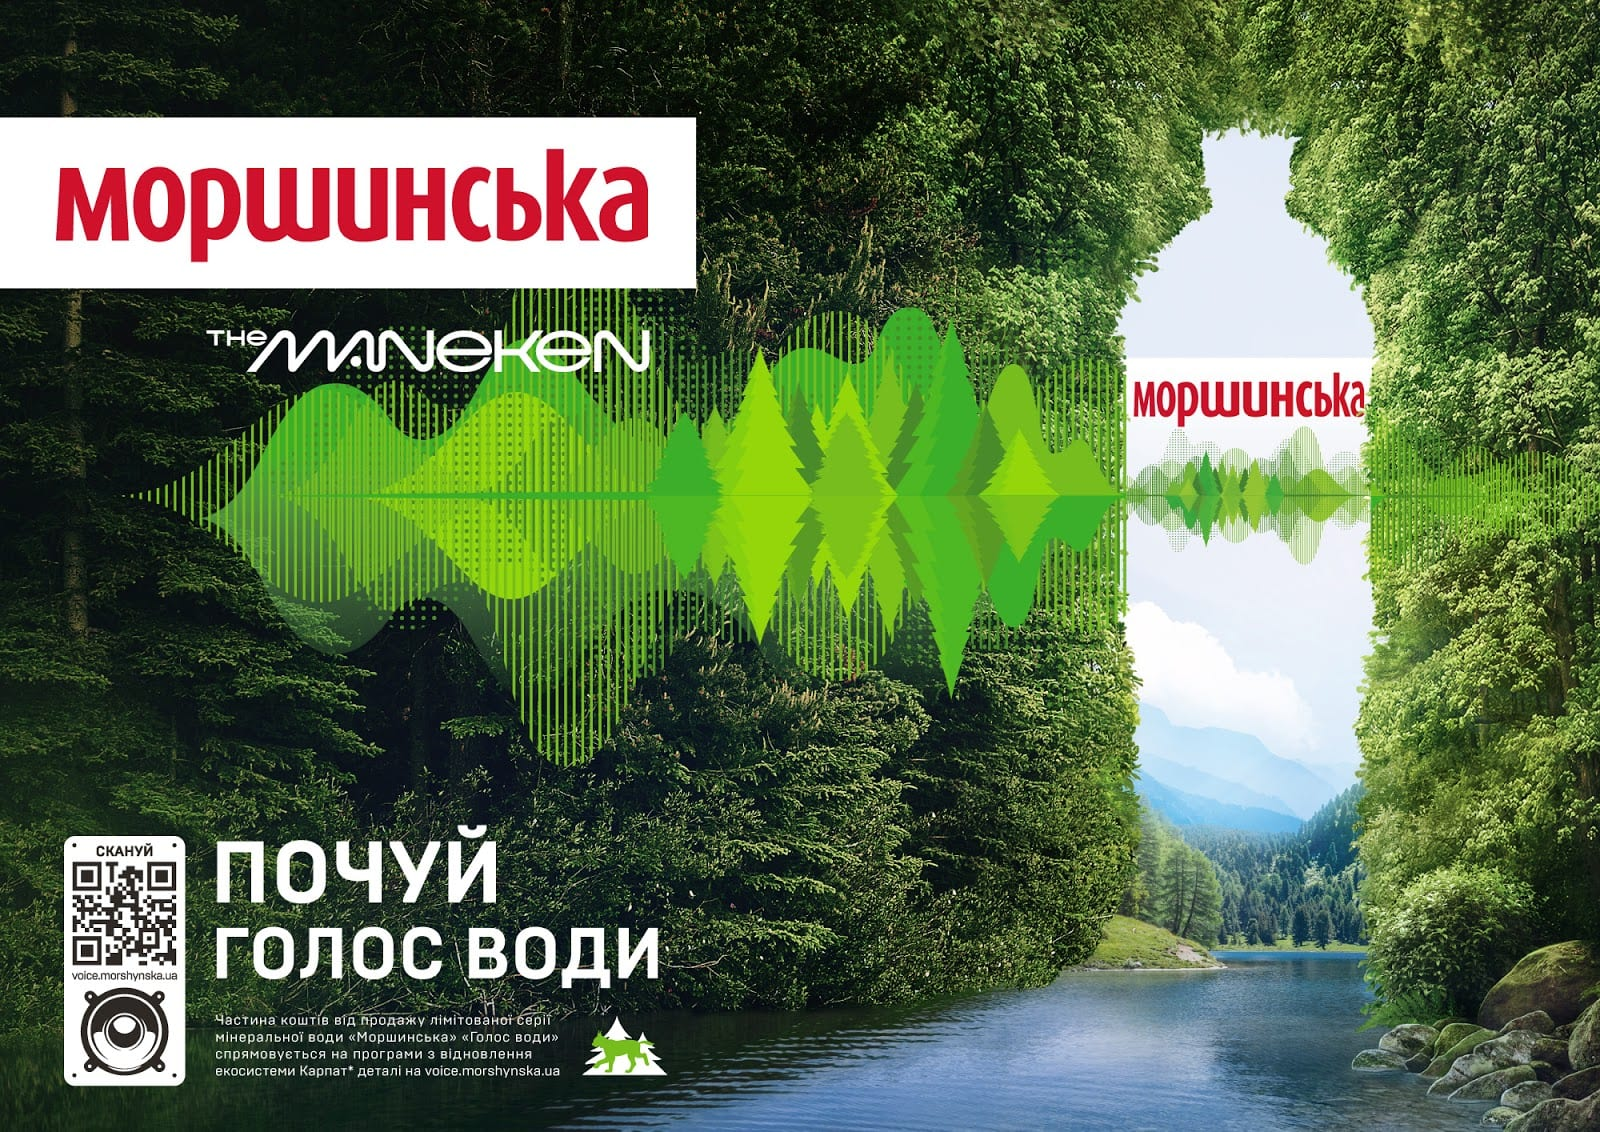 morshynska sound of nature website 08 - Morshynska Voice of Water – limitovaná edice